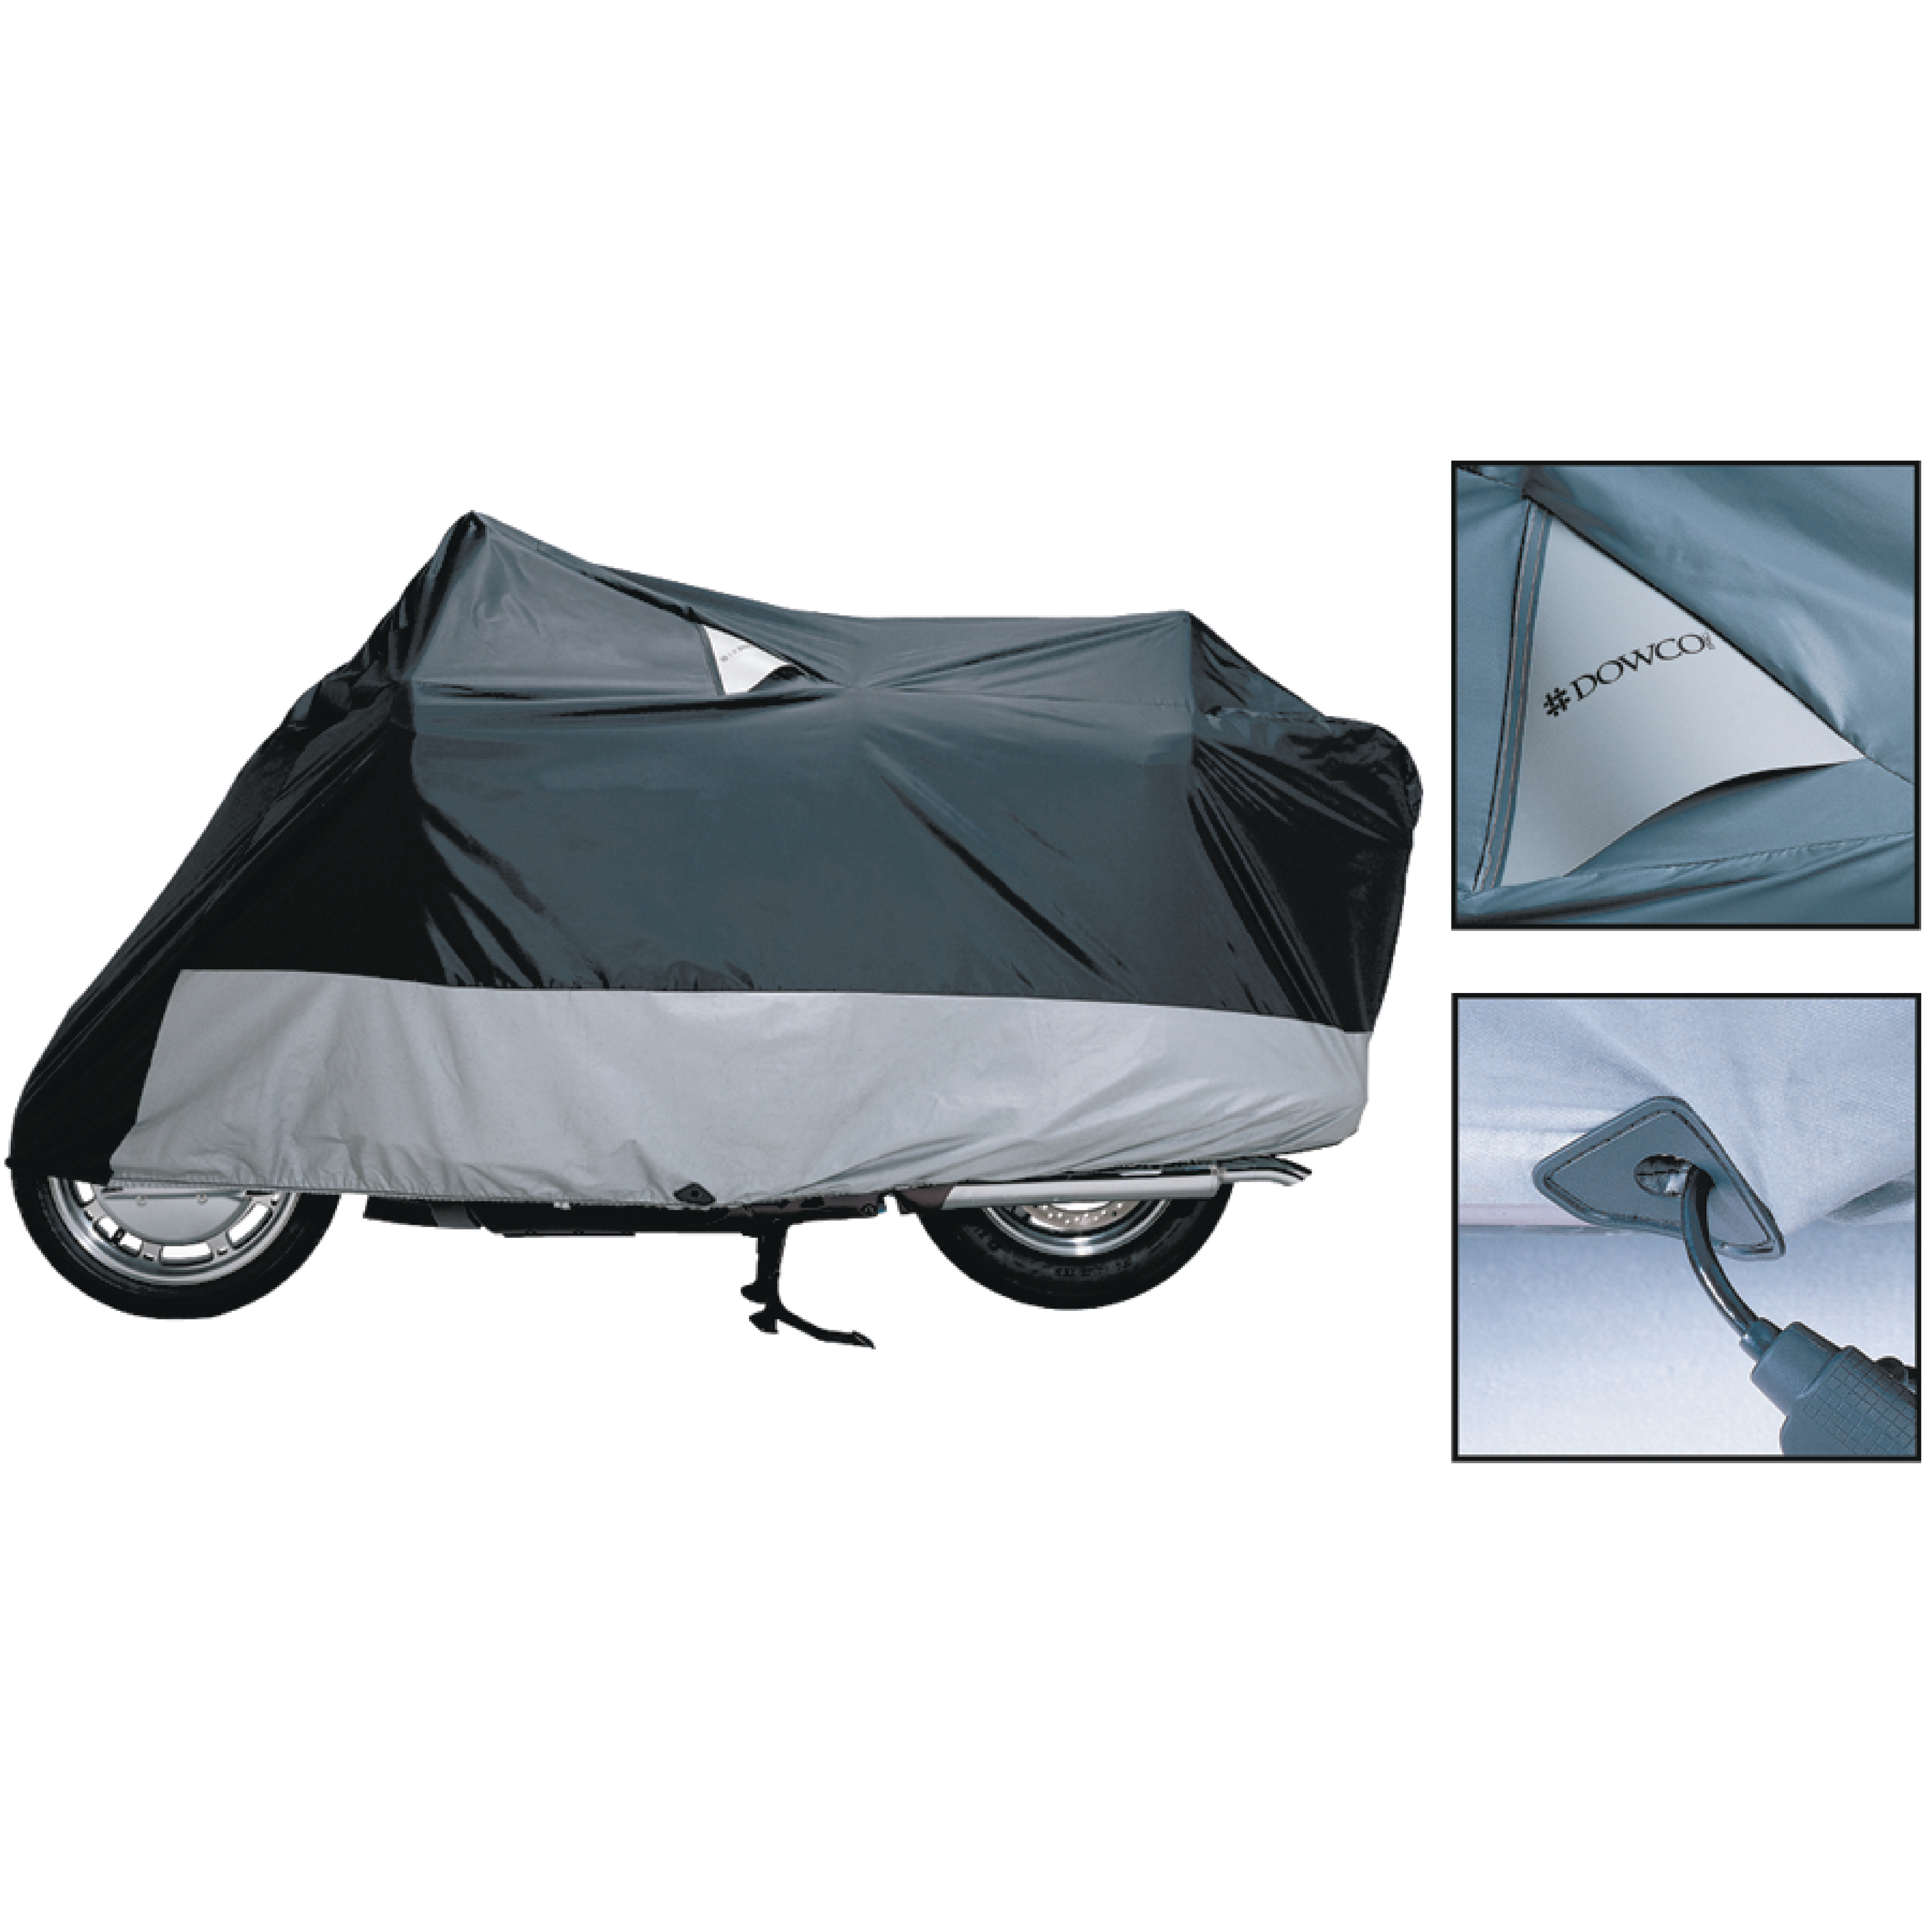 Dowco Guardian 50006-02 WeatherAll Plus Indoor/Outdoor Reflective Waterproof Motorcycle Cover for XXXL (Large Touring)